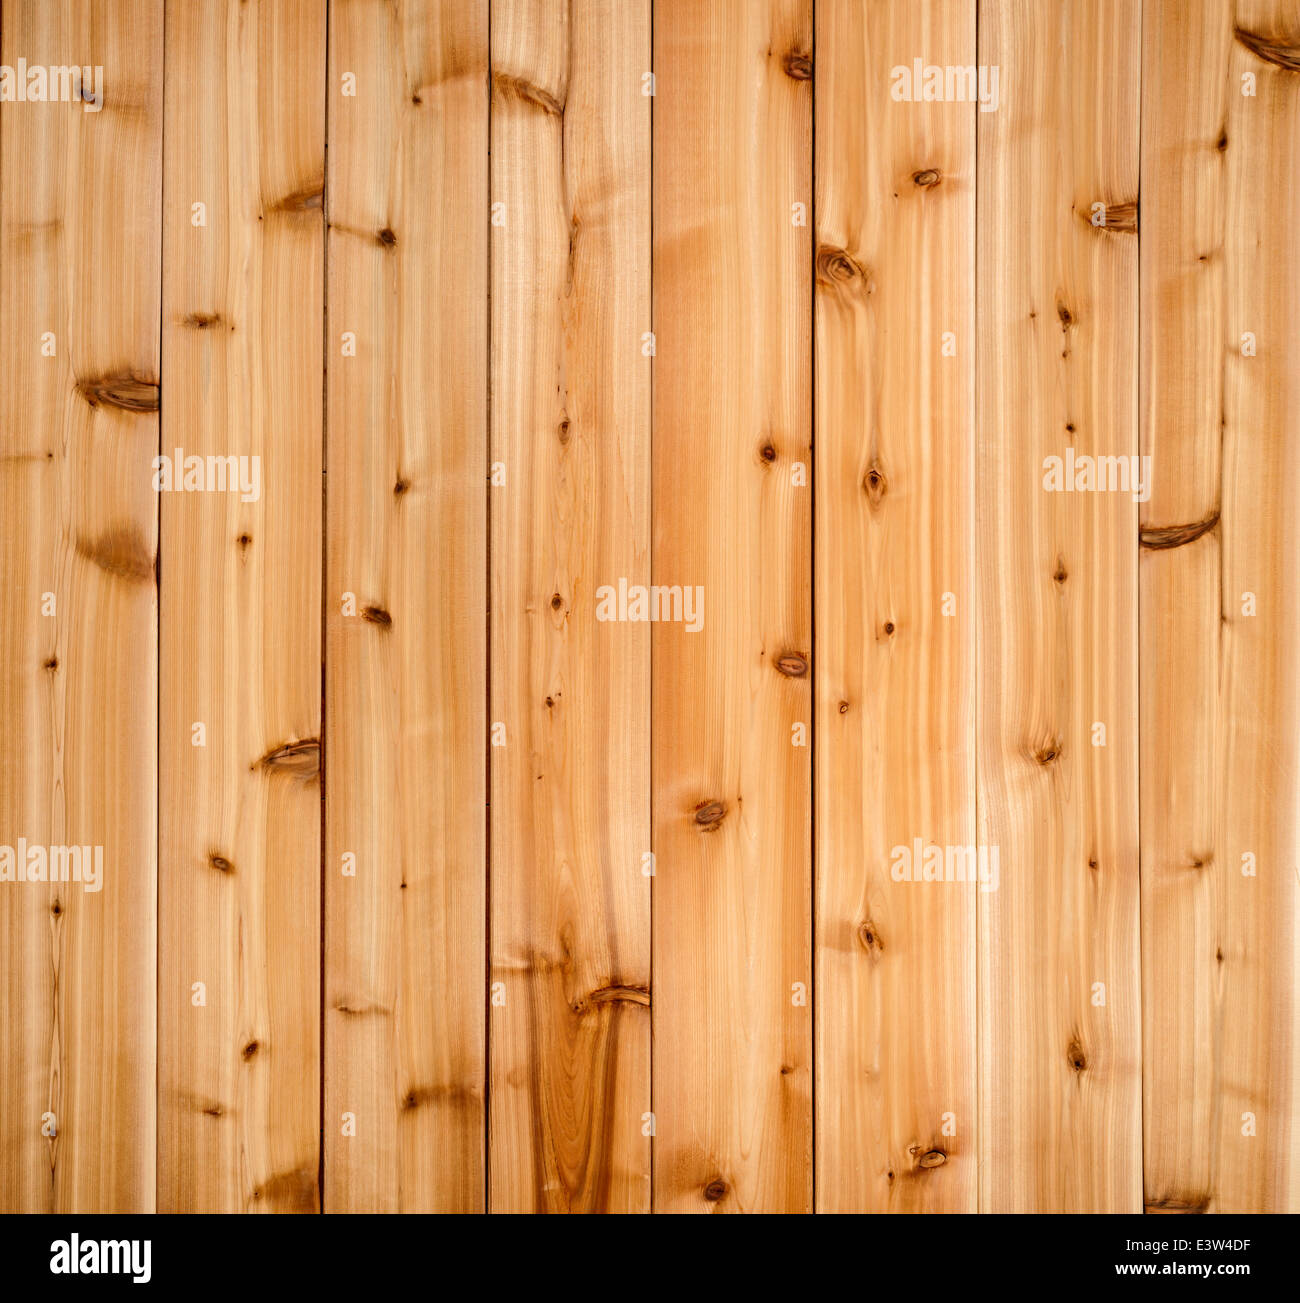 Background of wooden red cedar planks showing woodgrain texture - Stock Image